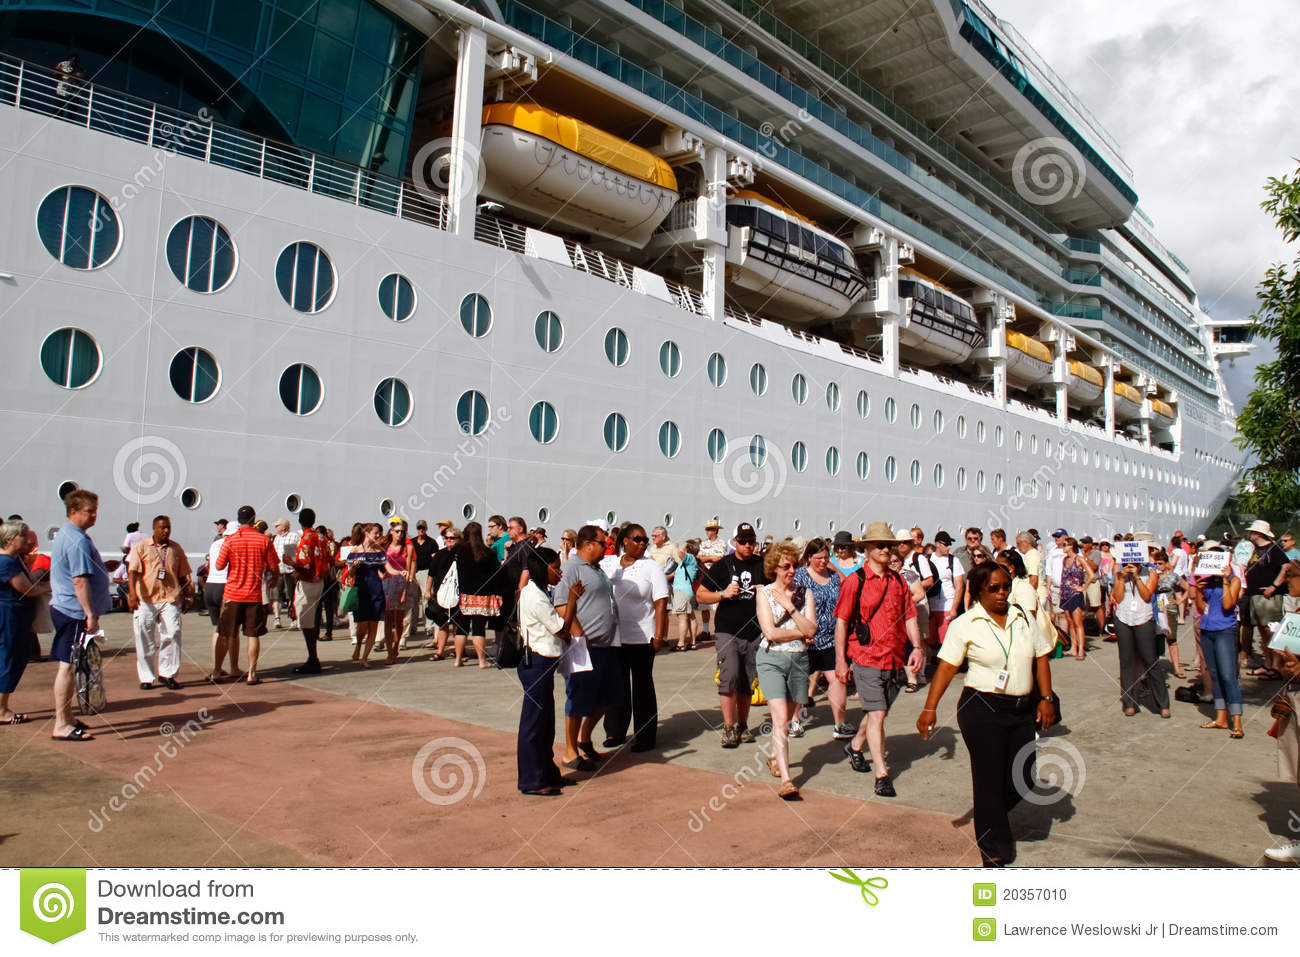 St lucia cruise ship passengers editorial image image for Passengers spaceship